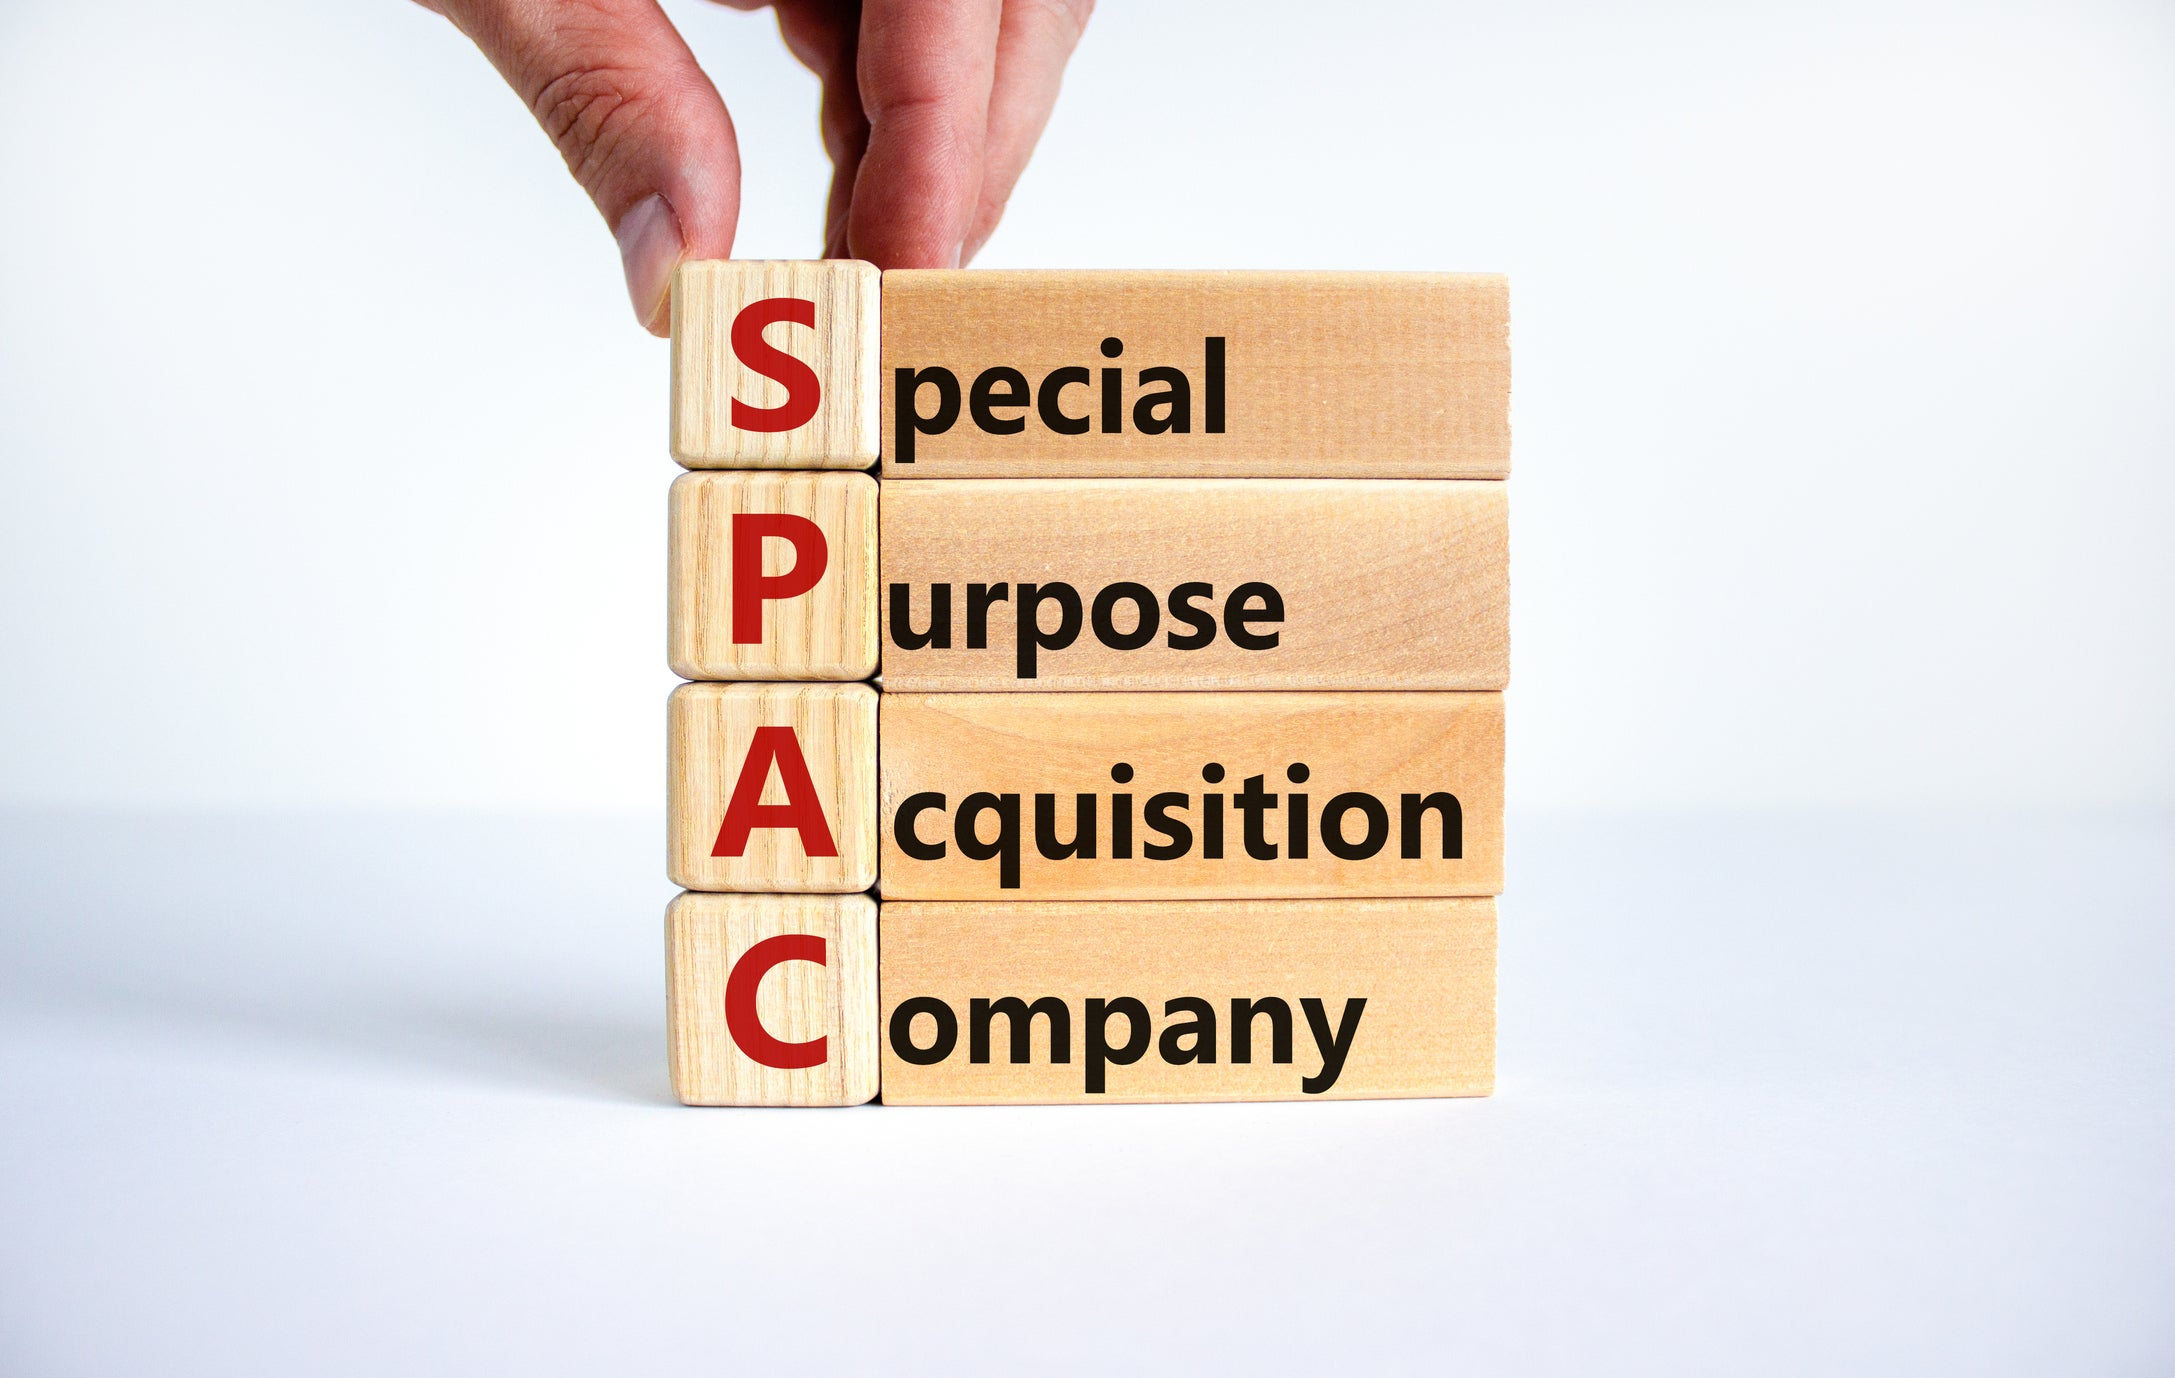 2 SPAC Stocks That Could Be 10-Baggers